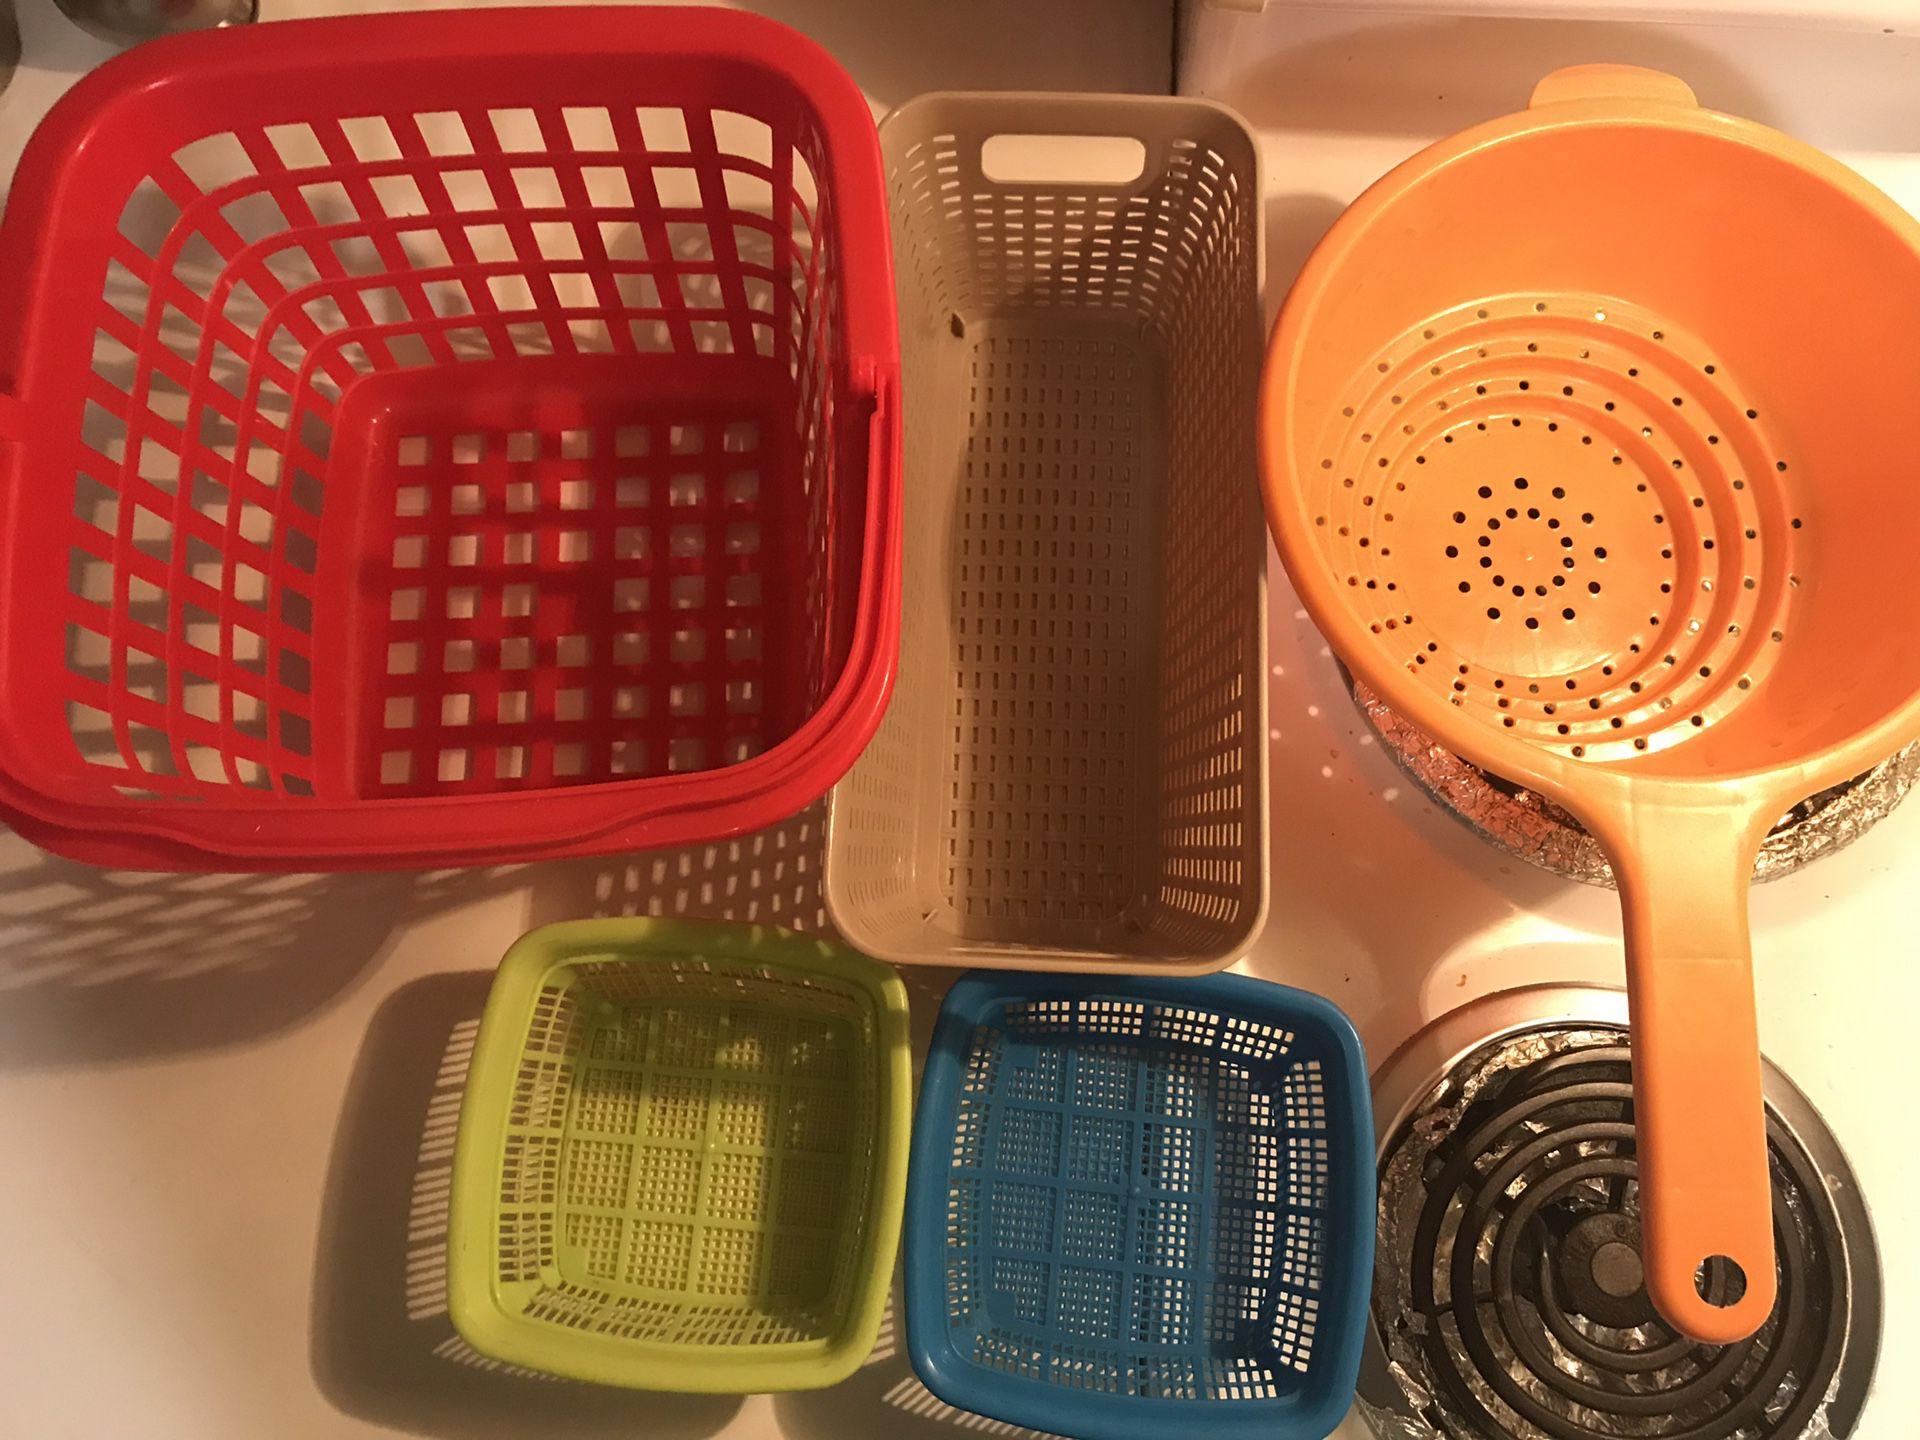 Drainer and Vagetable Basket